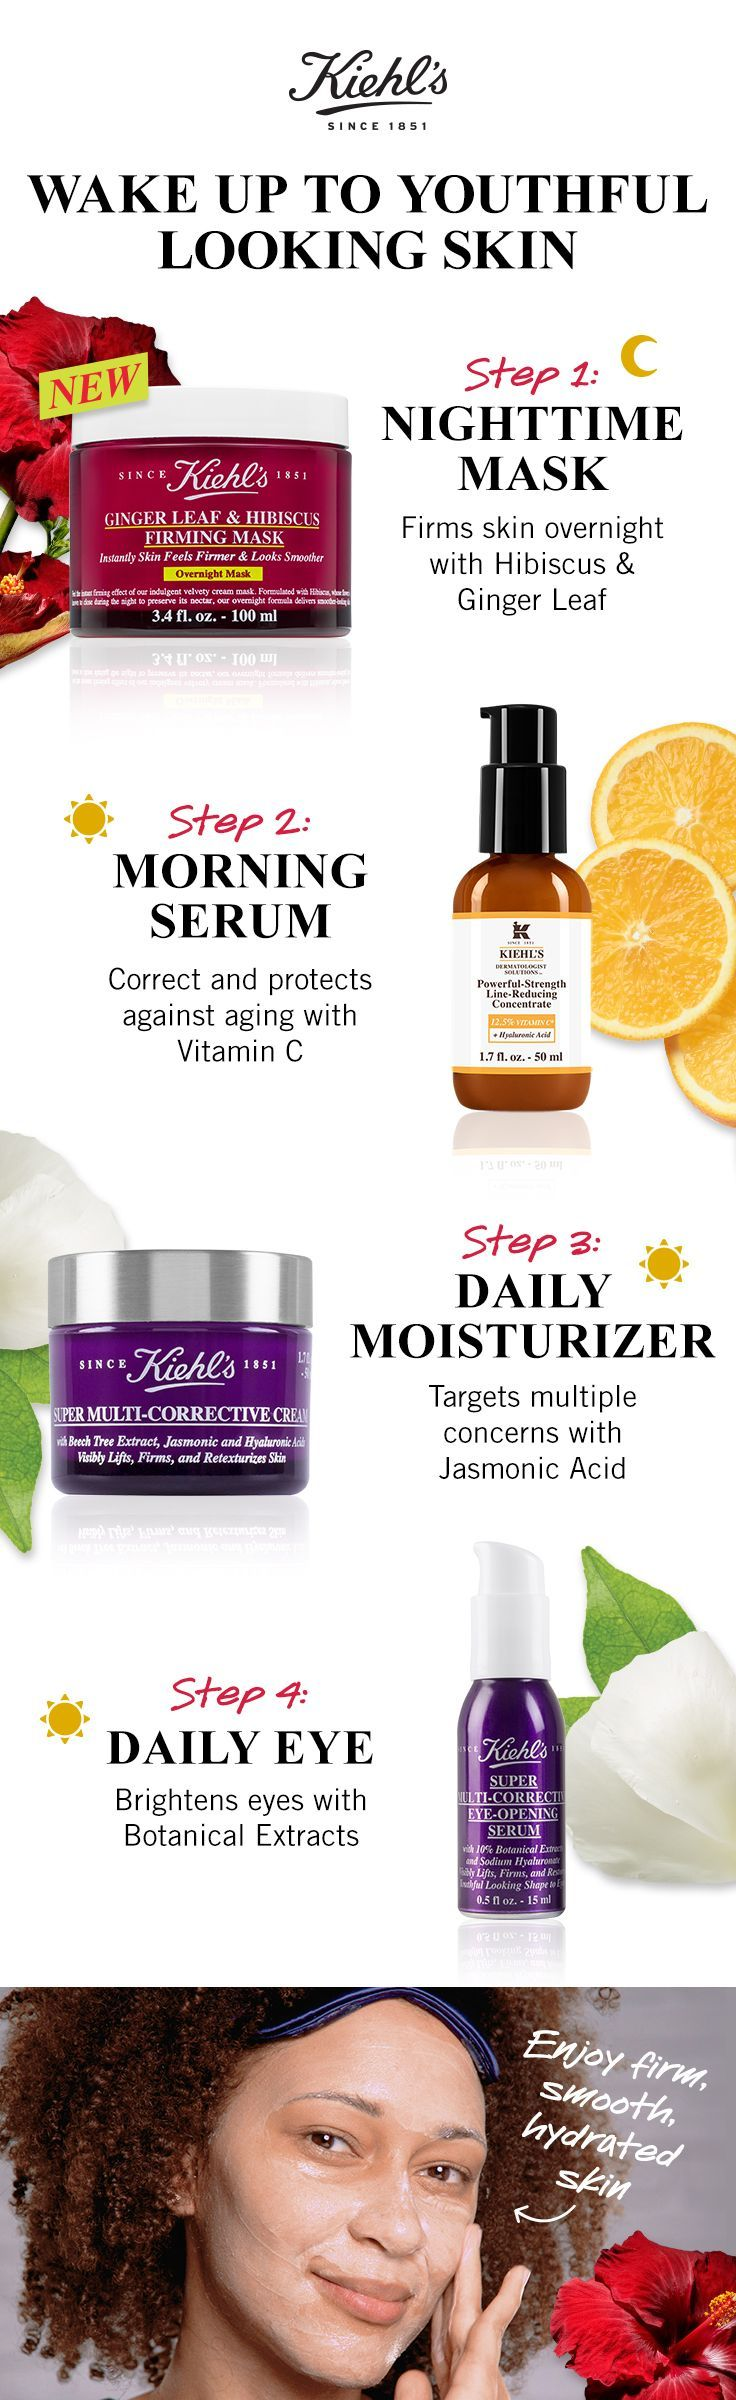 Kiehl's Overnight Firming Mask is the next step in your nighttime anti-aging skin care routine. Learn how to apply: use at night time before your morning serum and daily moisturizers to reveal firmer, younger looking skin. #morningskincareroutine